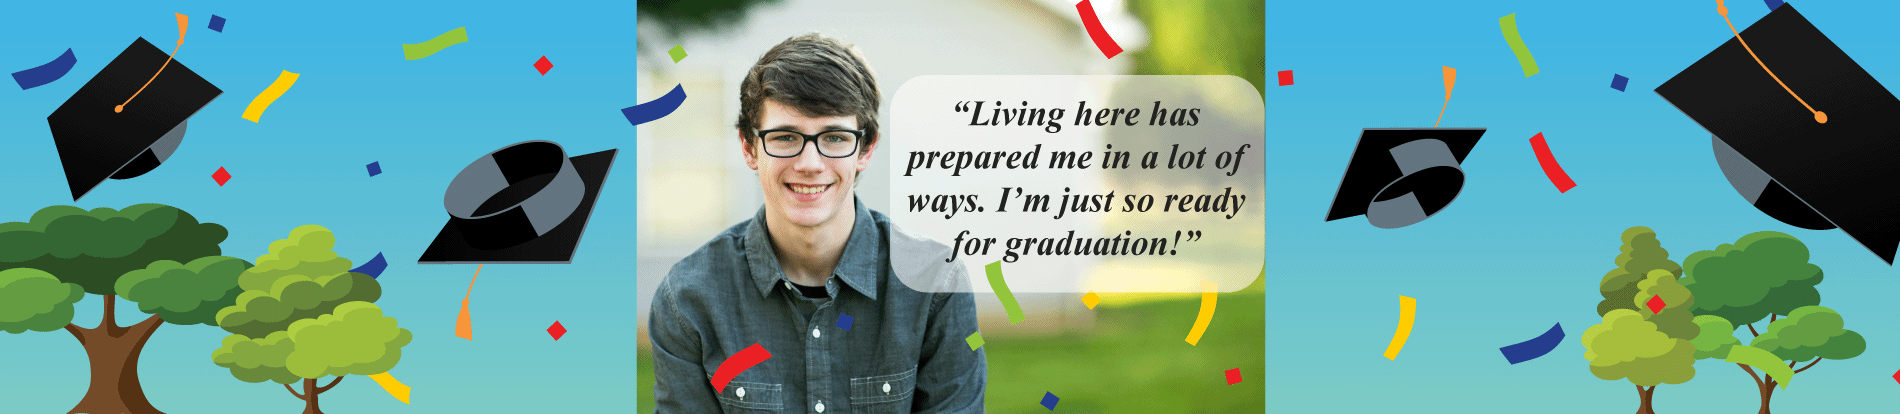 'Living here has prepared me in a lot of ways. I'm just so ready for graduation!'